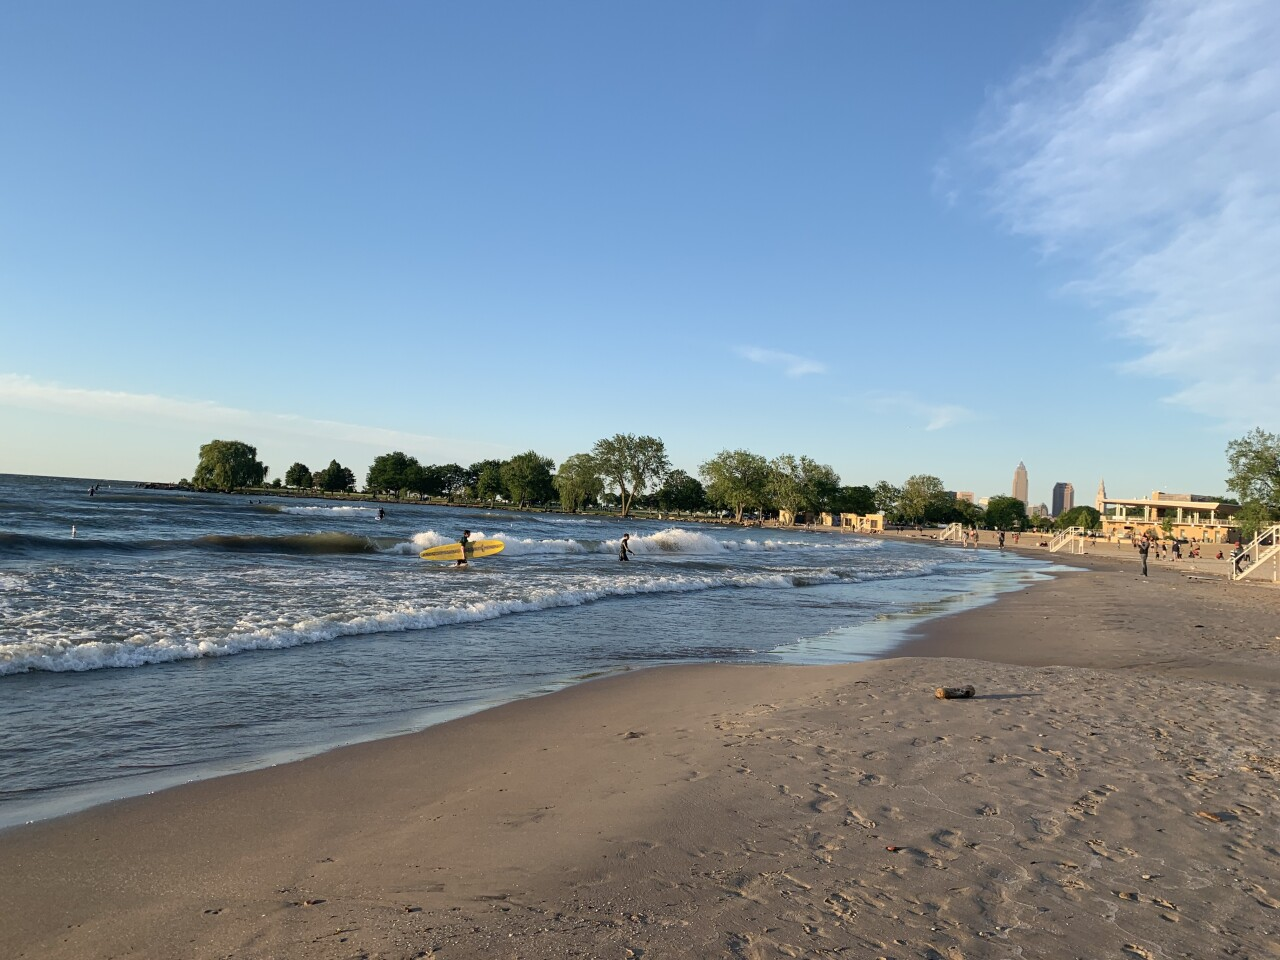 Surfers catch waves at Cleveland's Edgewater Beach.